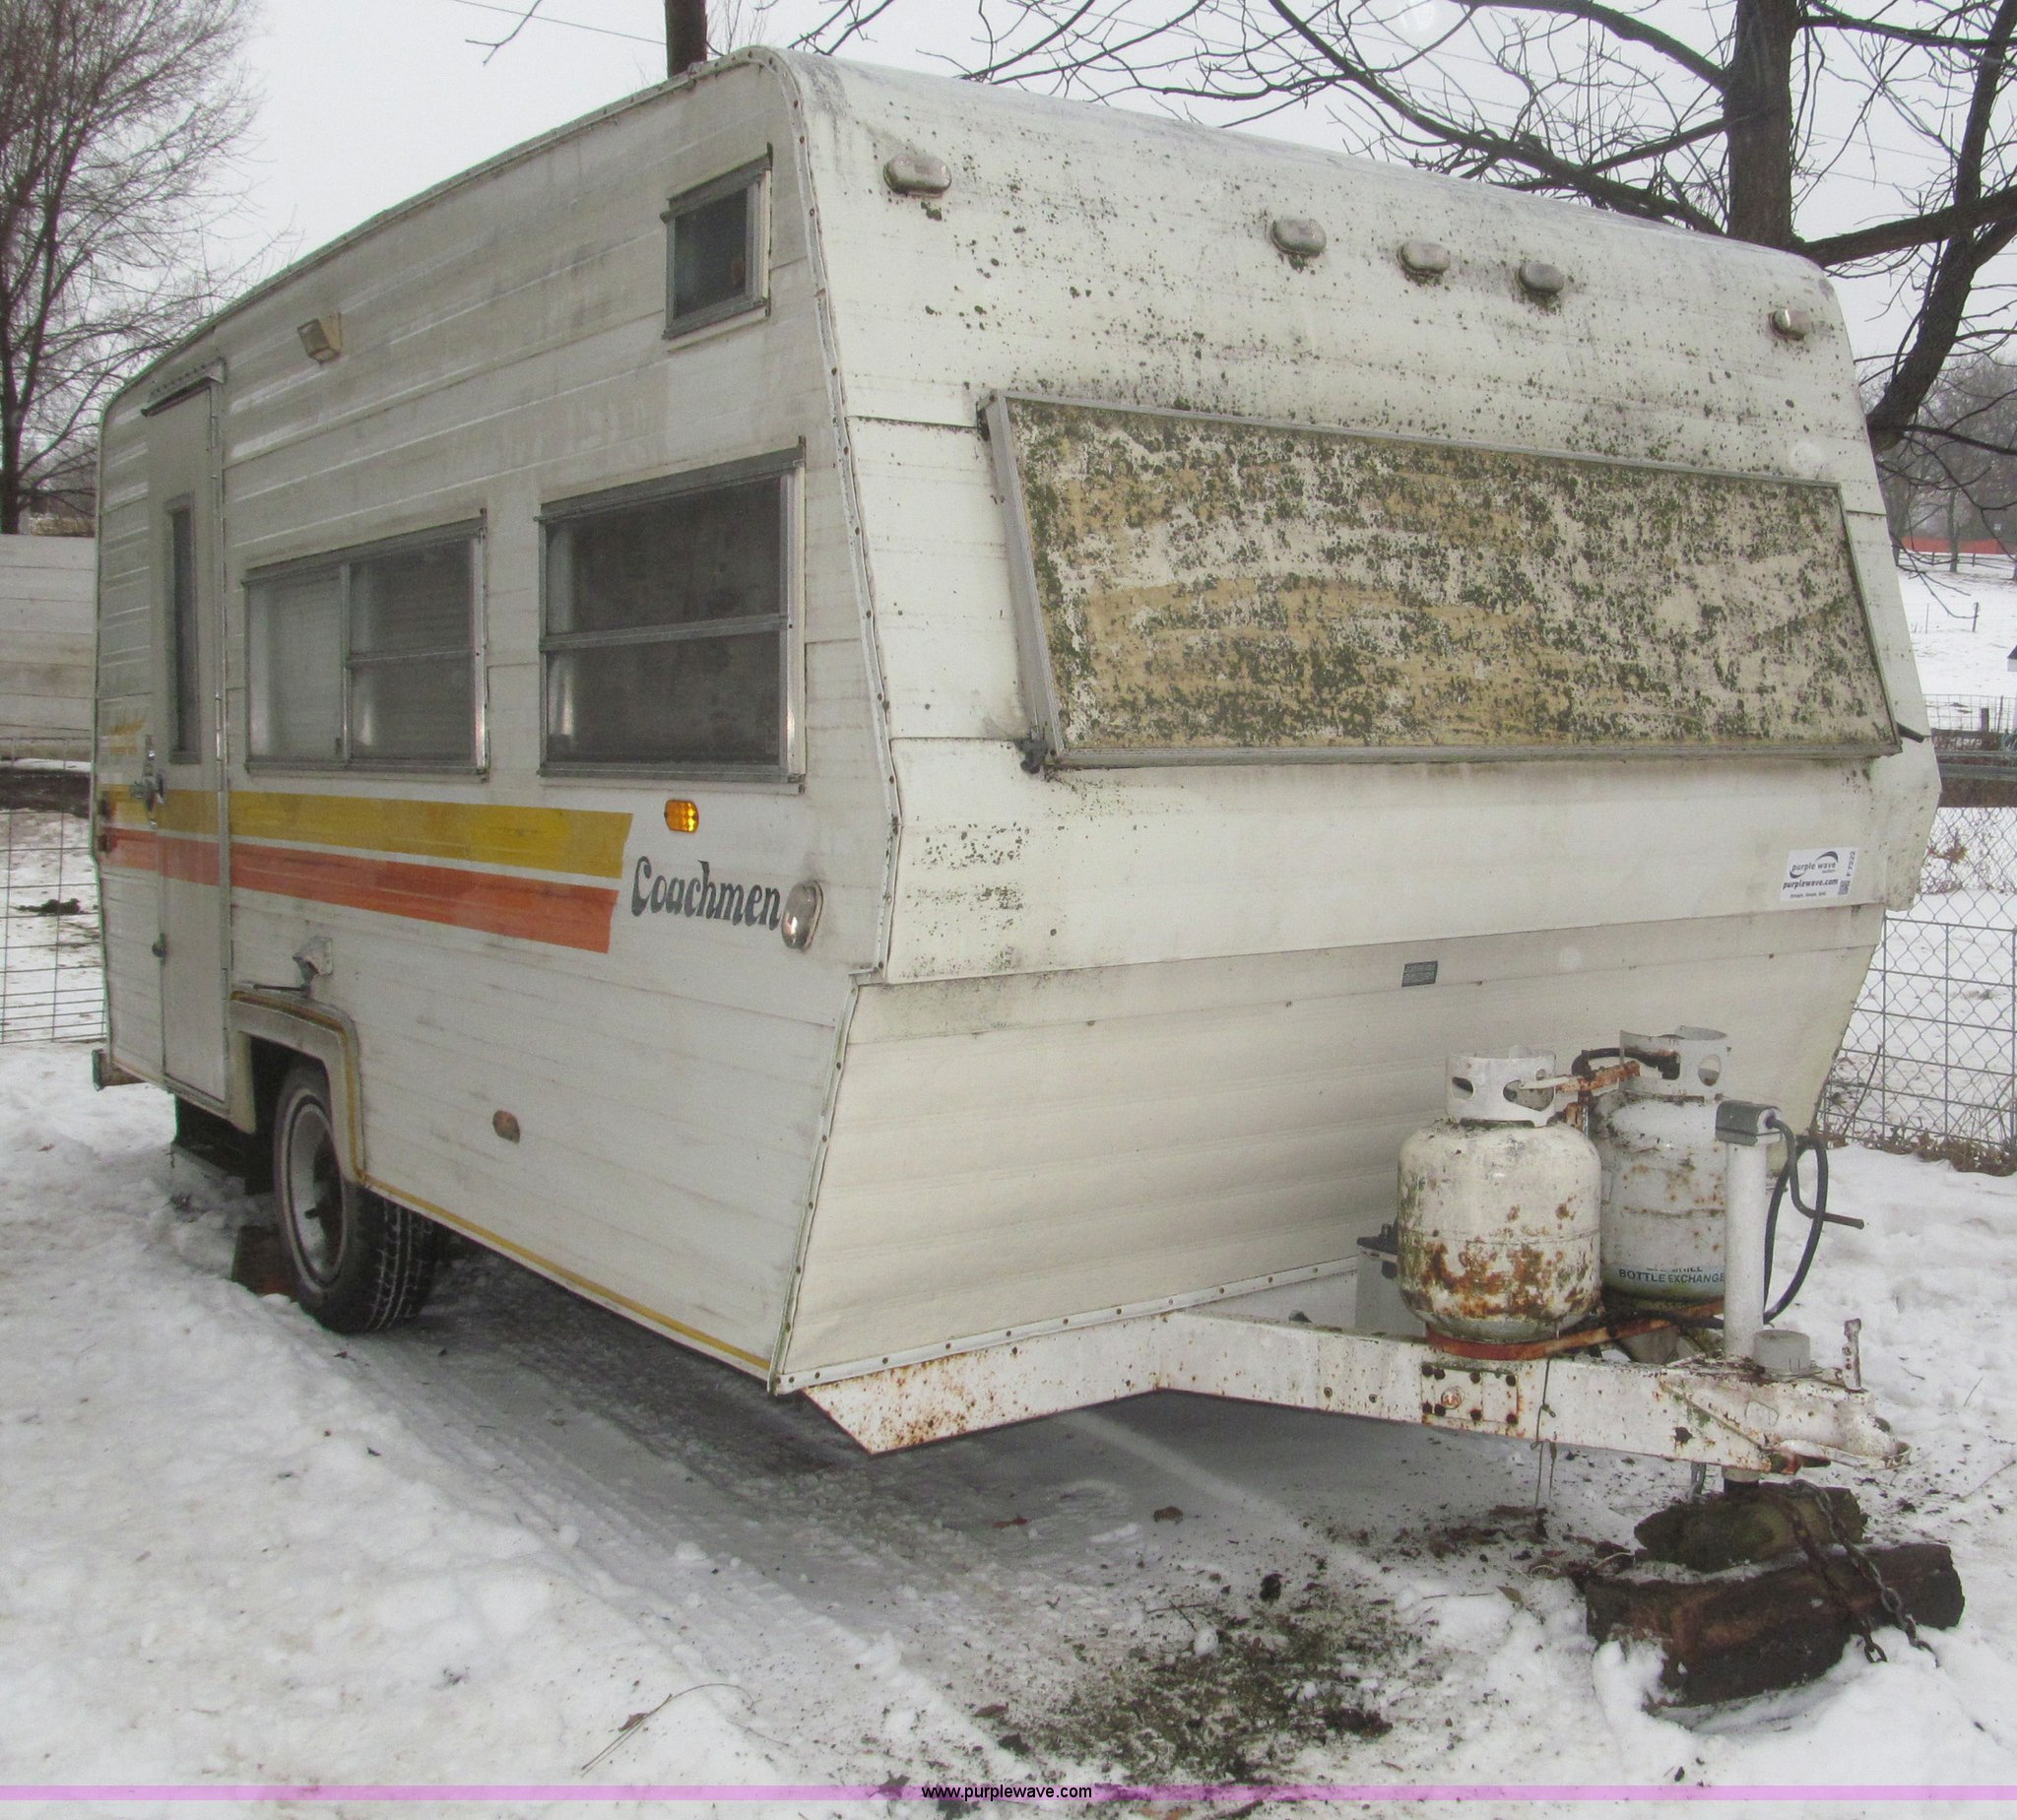 1977 Coachman Cadet Camper Item F7222 Sold! February 5 V International Wiring  Diagrams 1976 Coachman Camper Wiring Diagram Rv